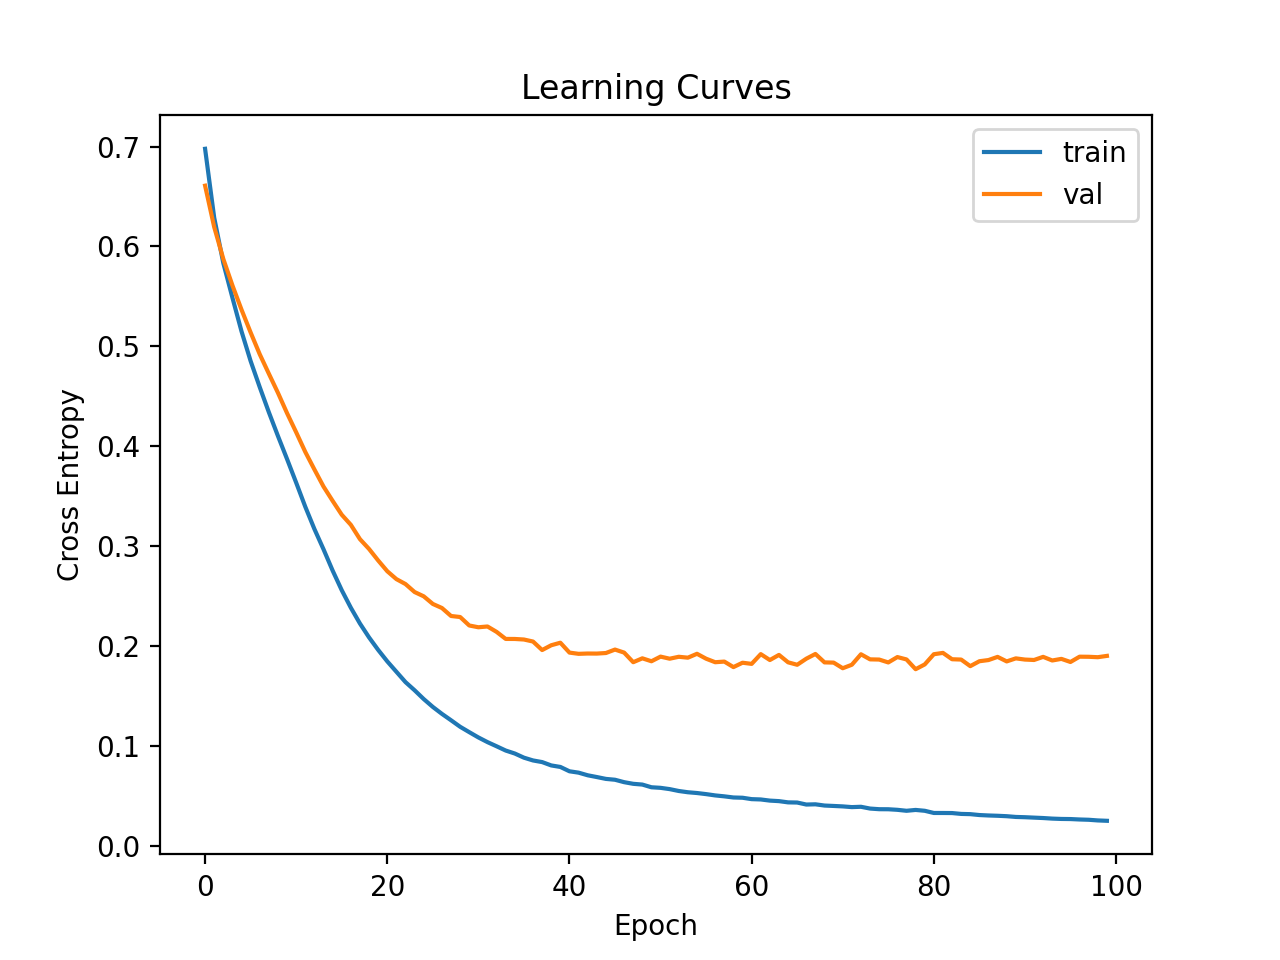 Learning Curves of Wider MLP on the Ionosphere Dataset